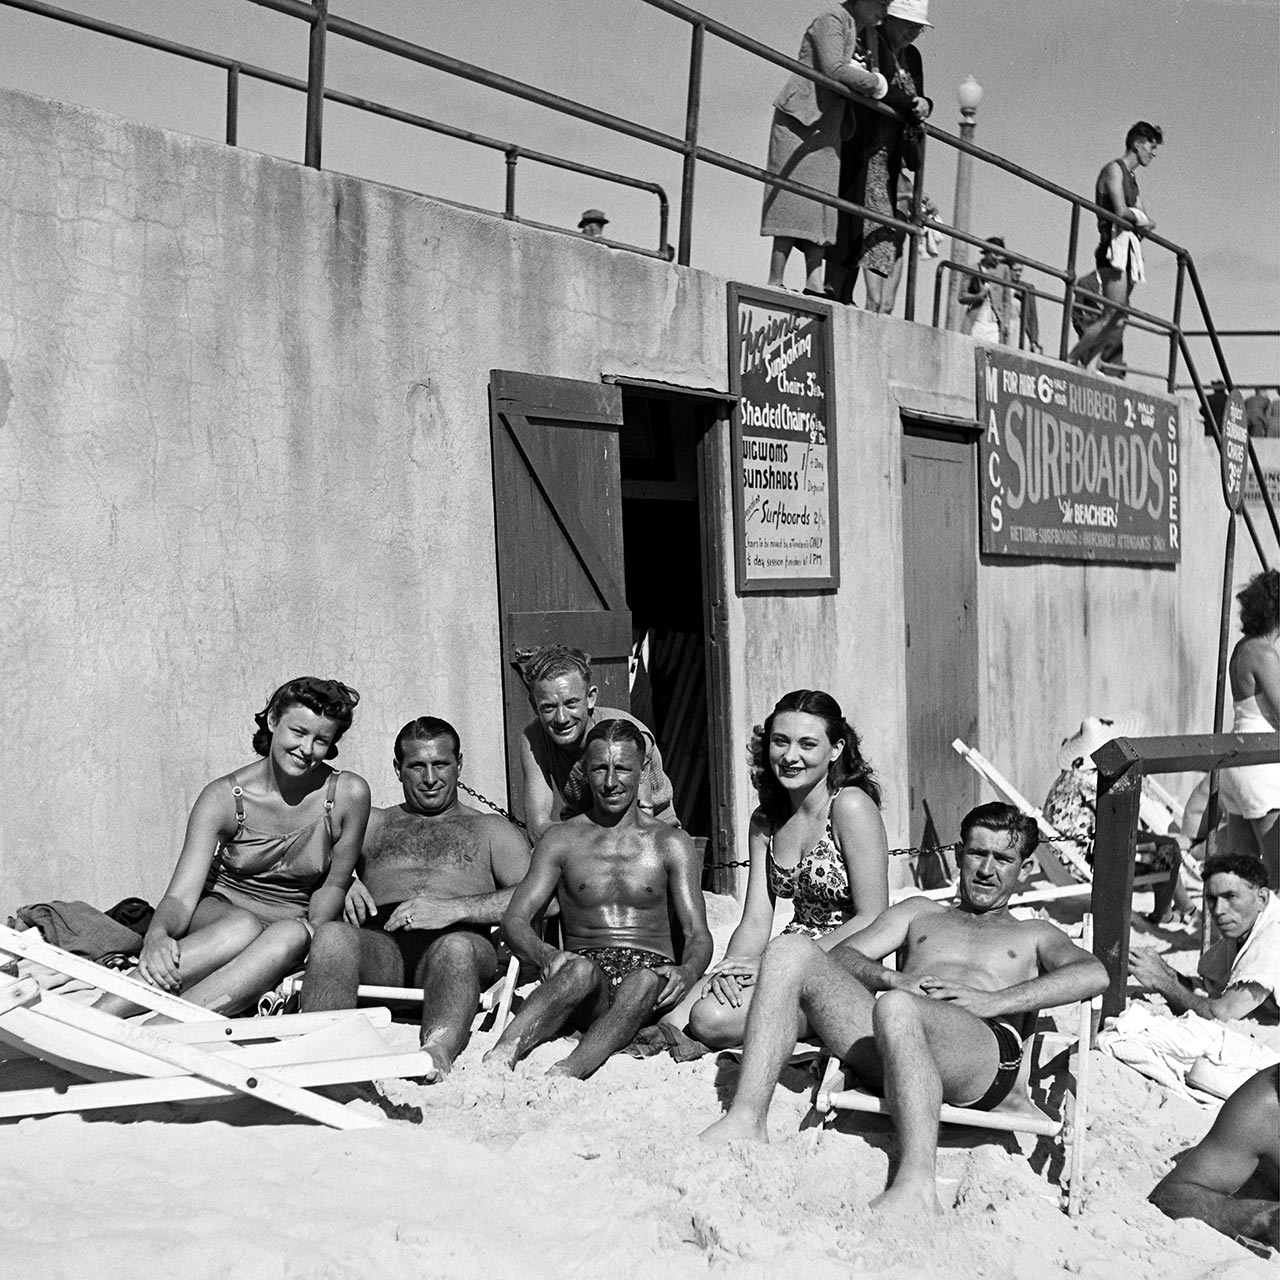 Sunbathing under the promenade, 6 October 1940. (Digital ID: a2391053)